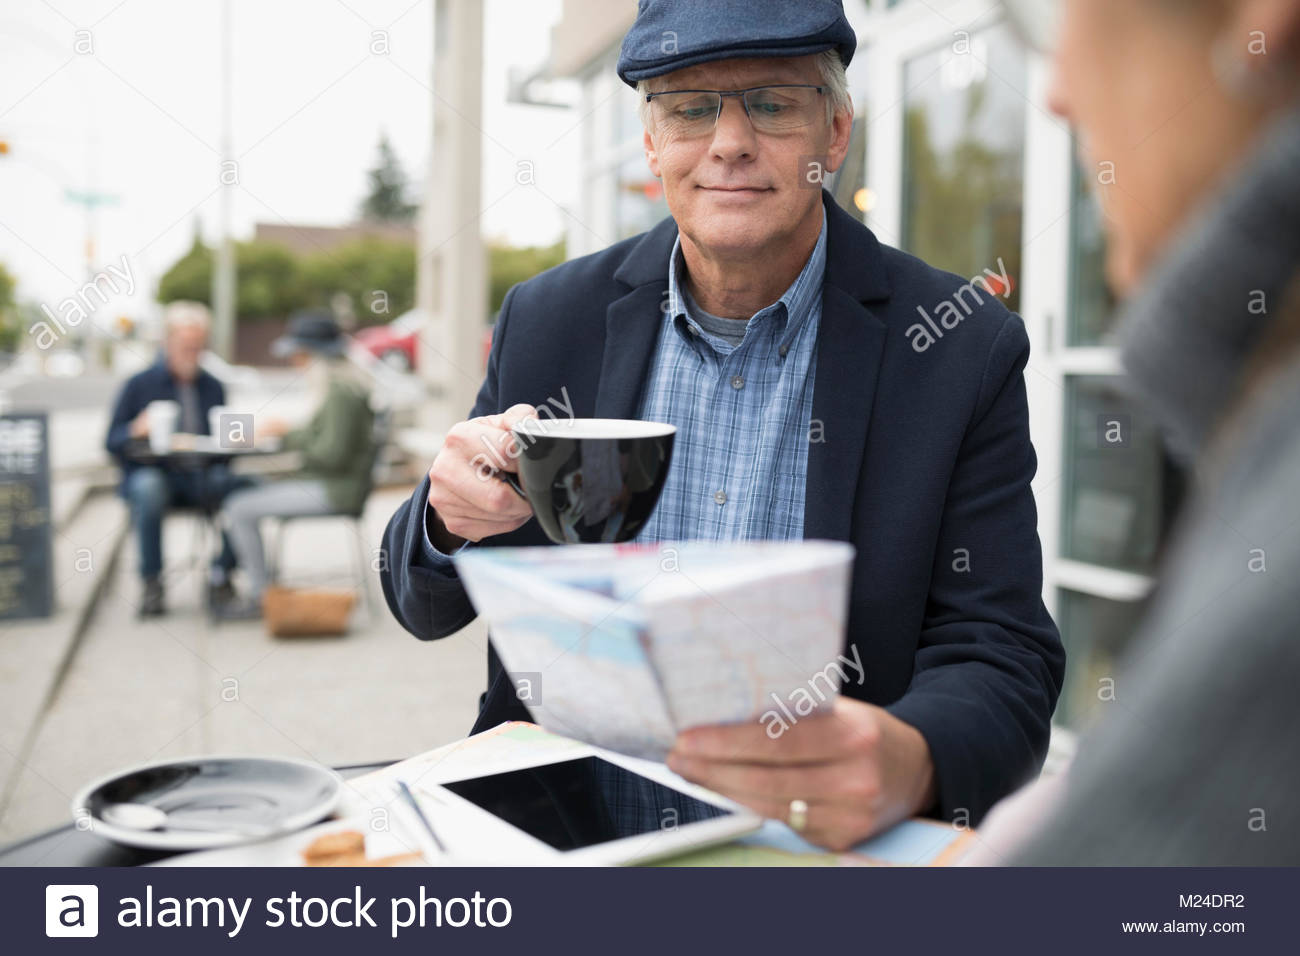 Senior man drinking coffee and looking at map at sidewalk cafe - Stock Image